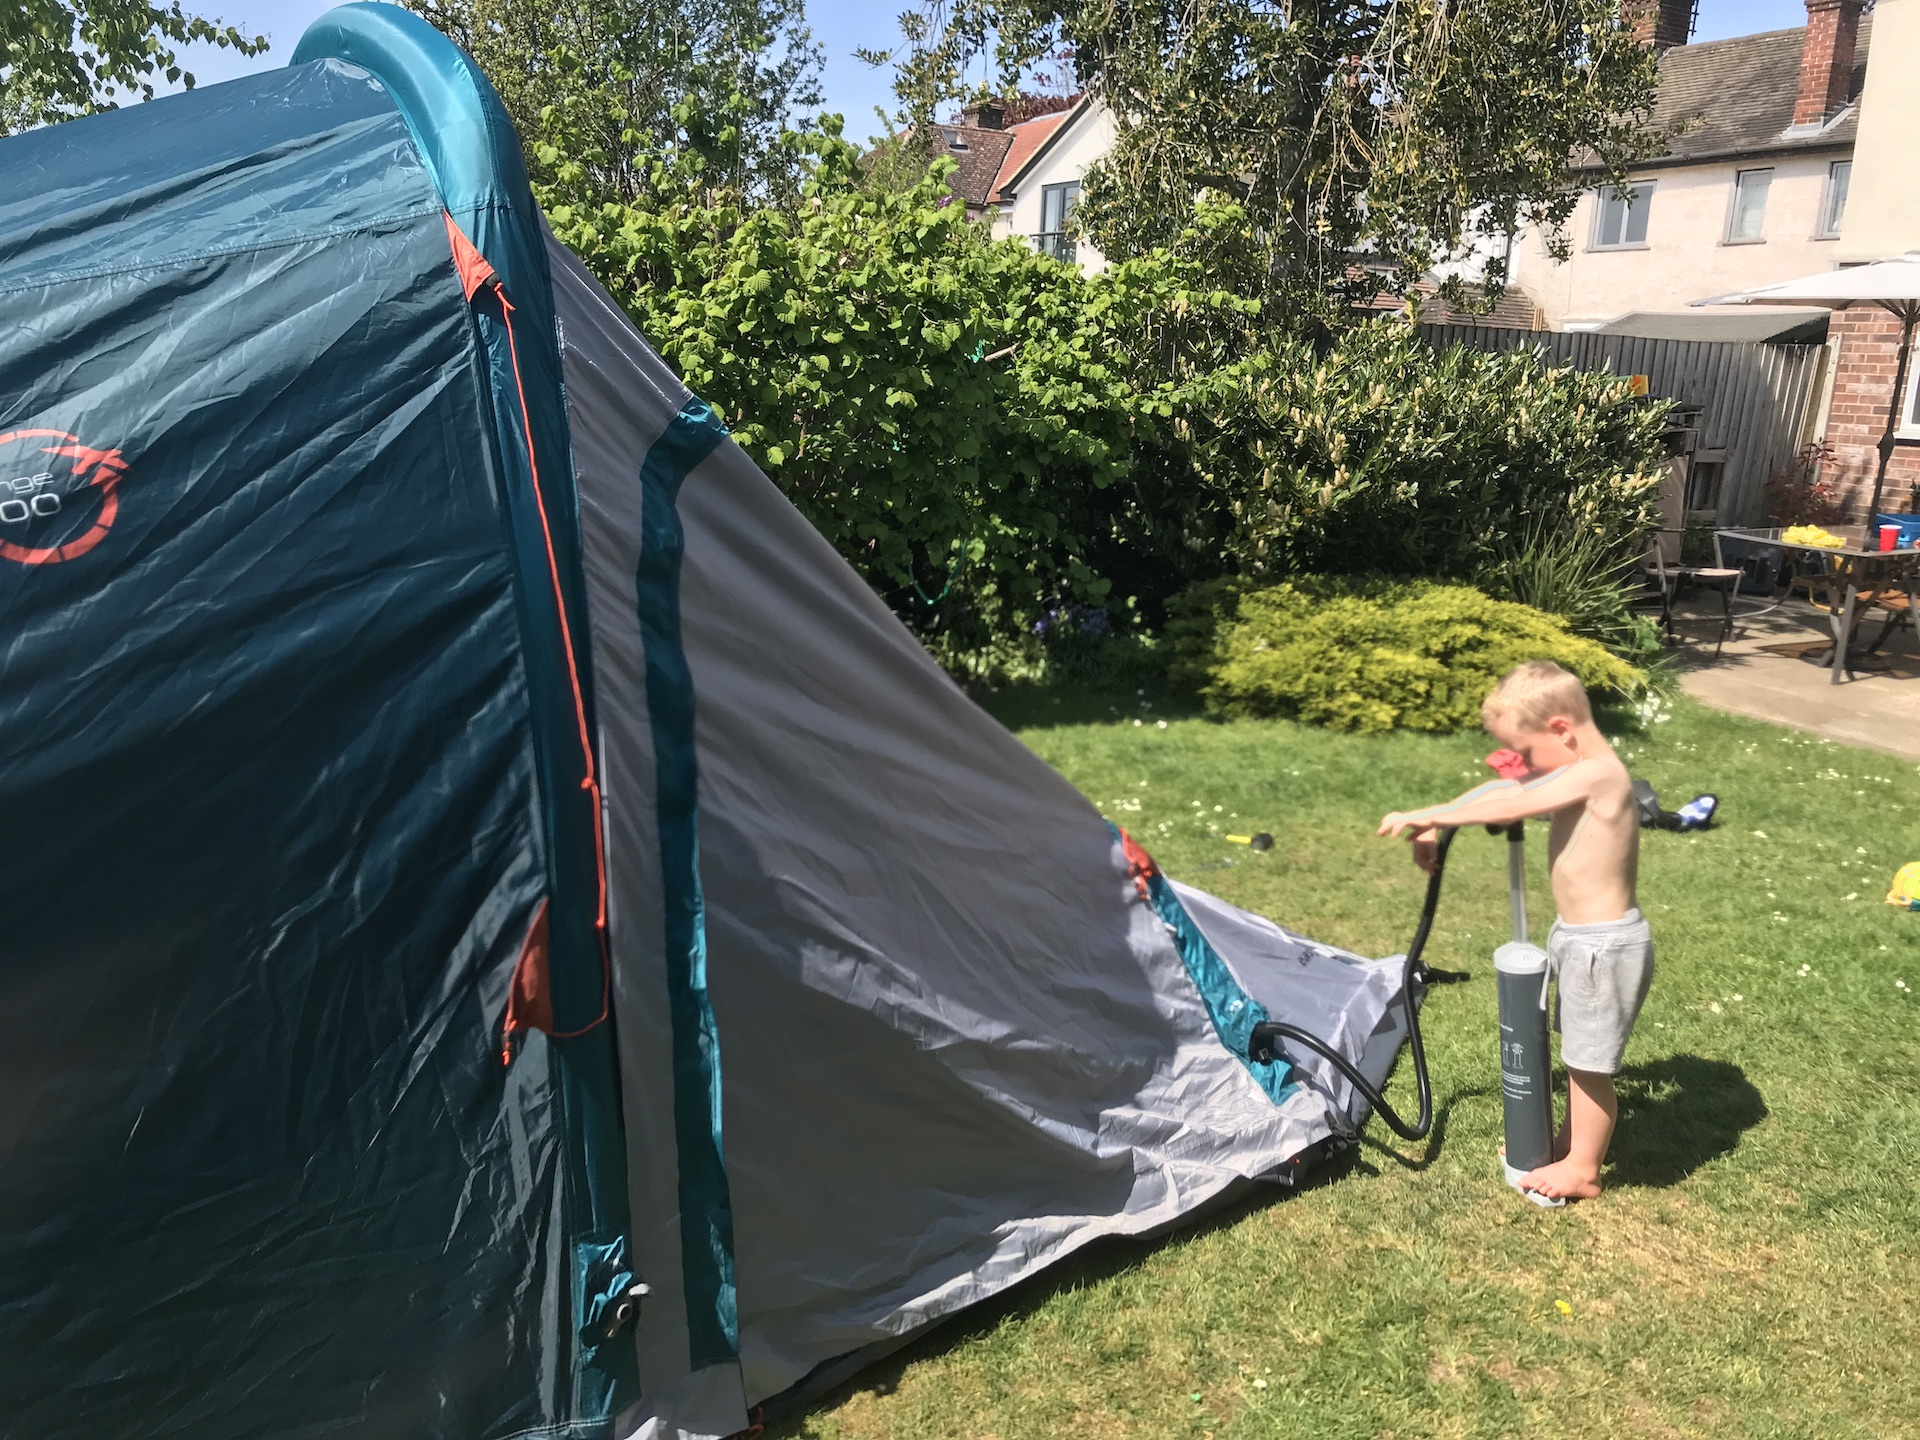 Are air tents good for family camping?